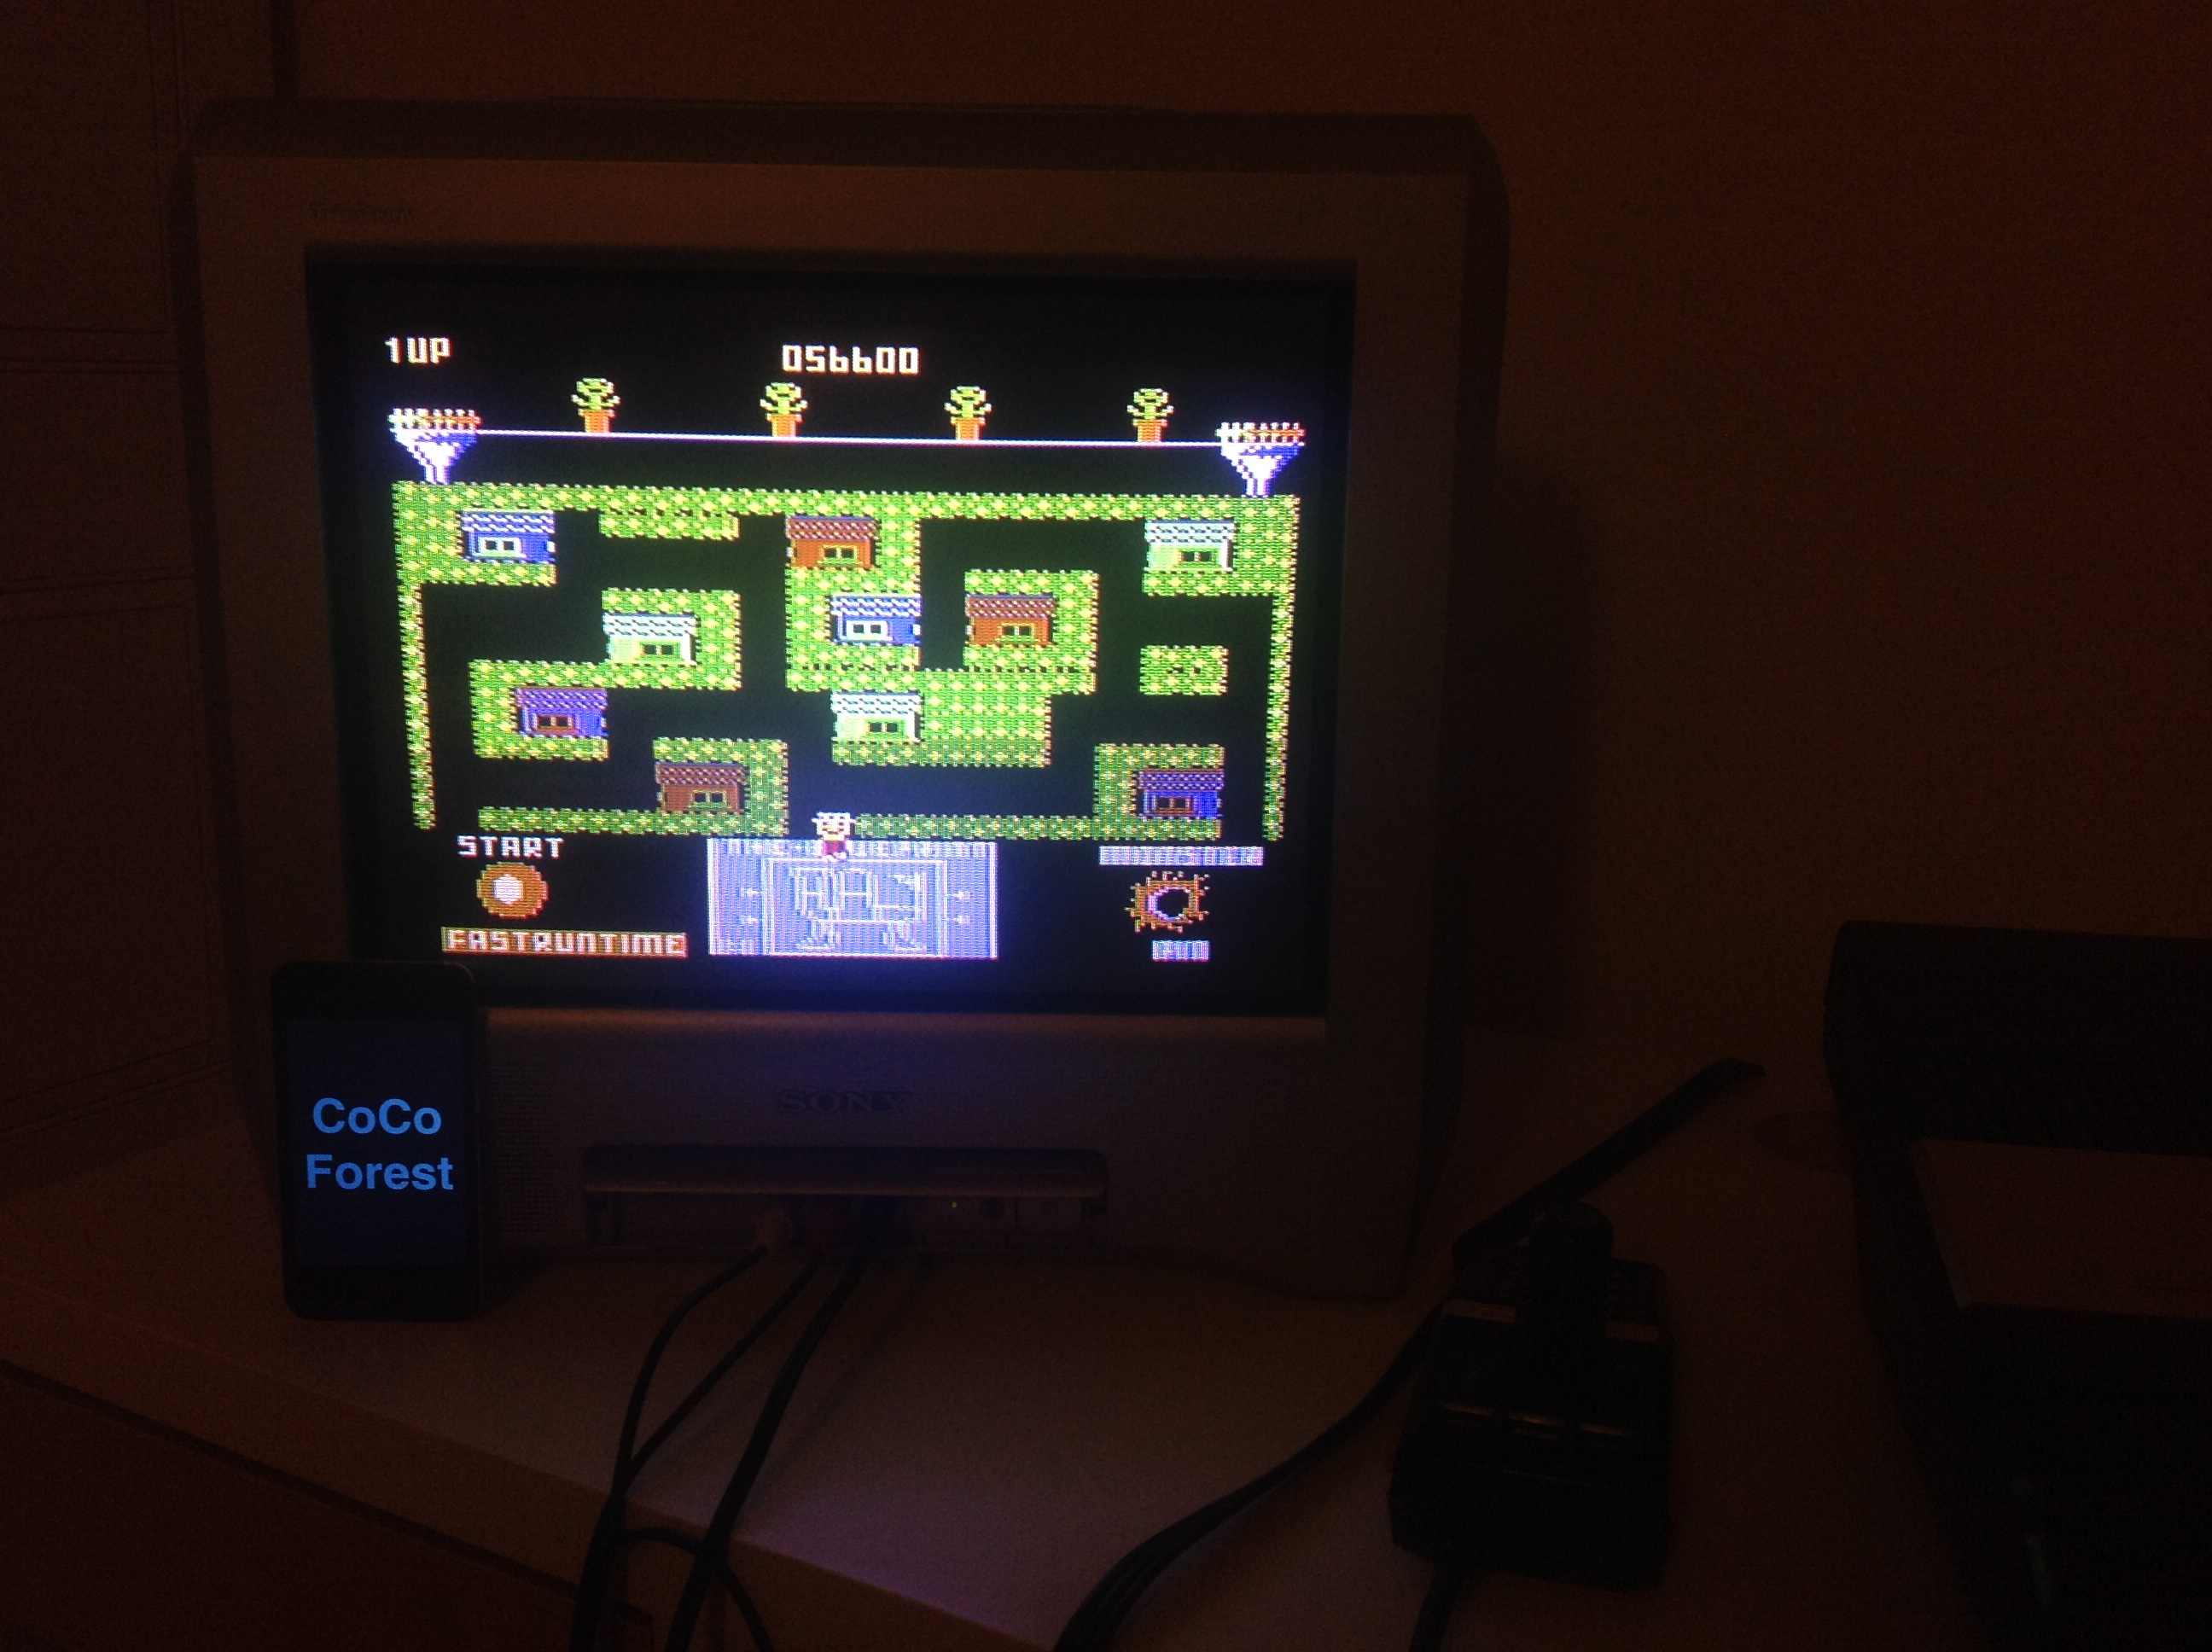 CoCoForest: Blue Print [Level 1] (Atari 5200) 56,600 points on 2015-11-12 10:48:02